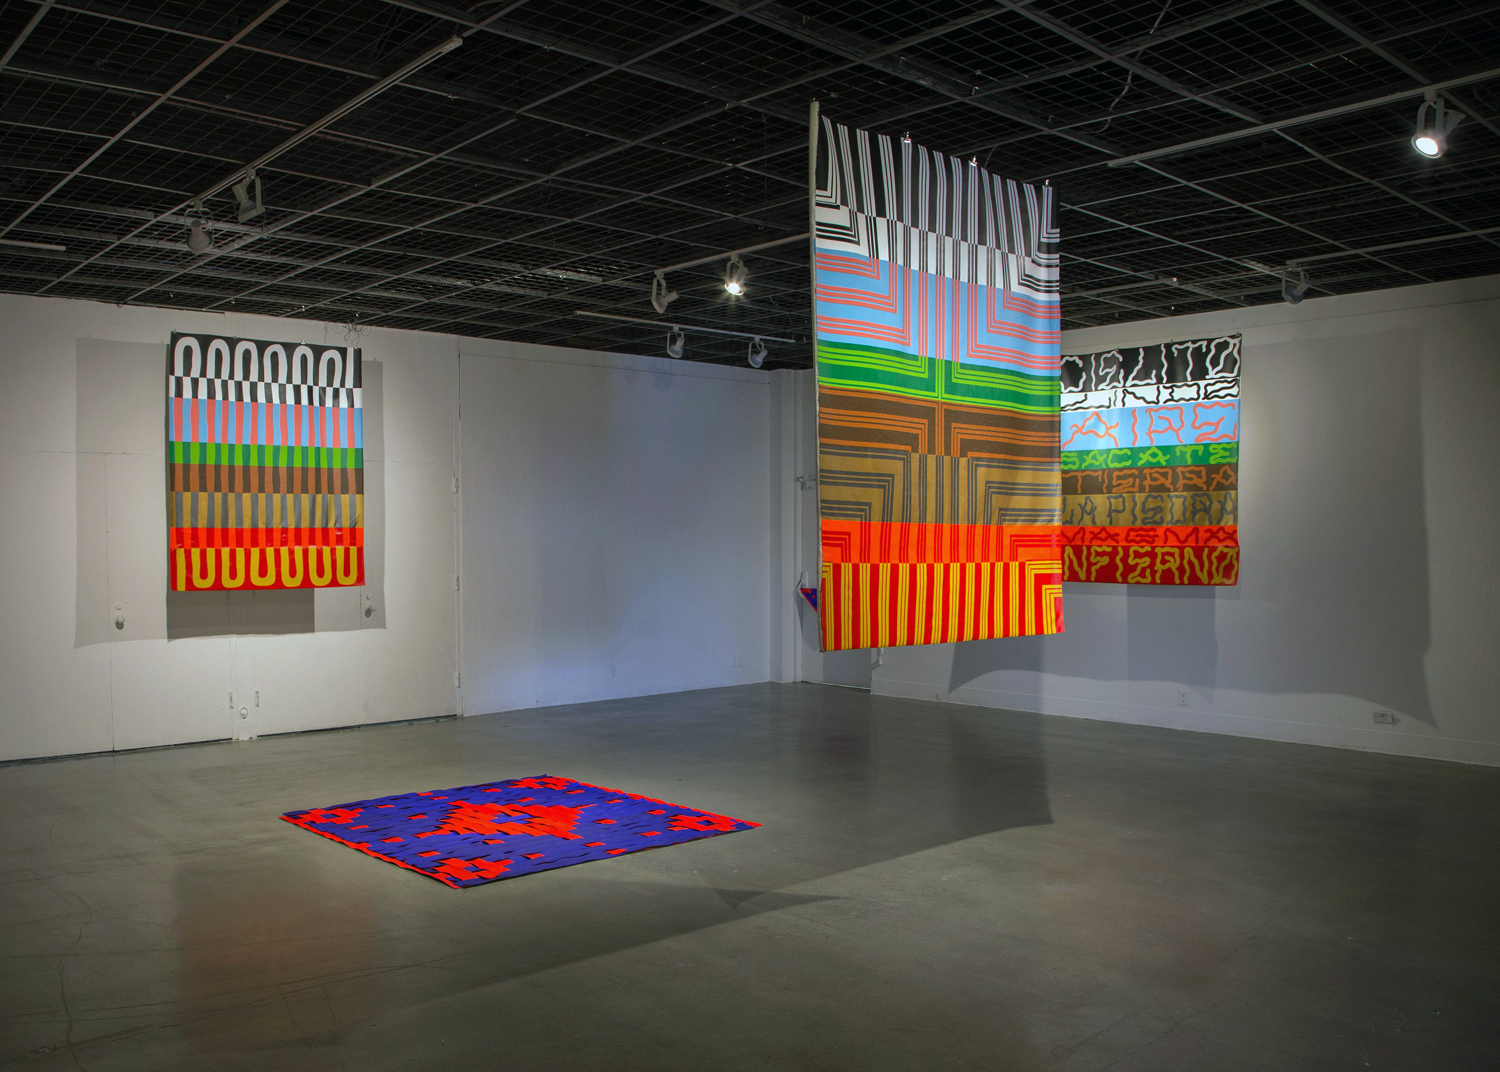 Installation view: California Institute of the Arts, Valencia, CA